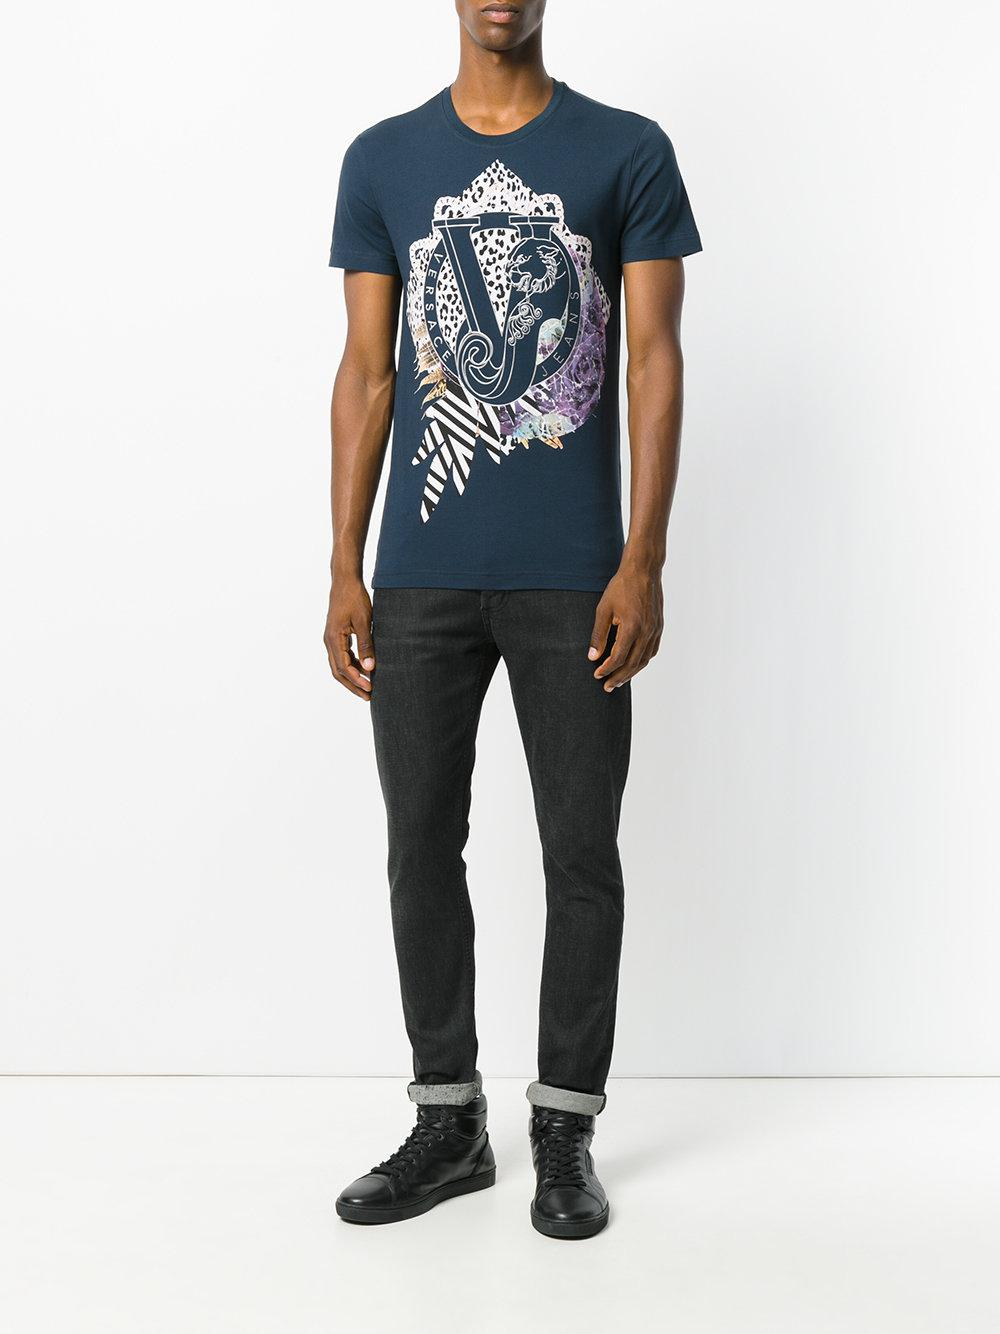 lyst versace jeans logo print t shirt in blue for men. Black Bedroom Furniture Sets. Home Design Ideas